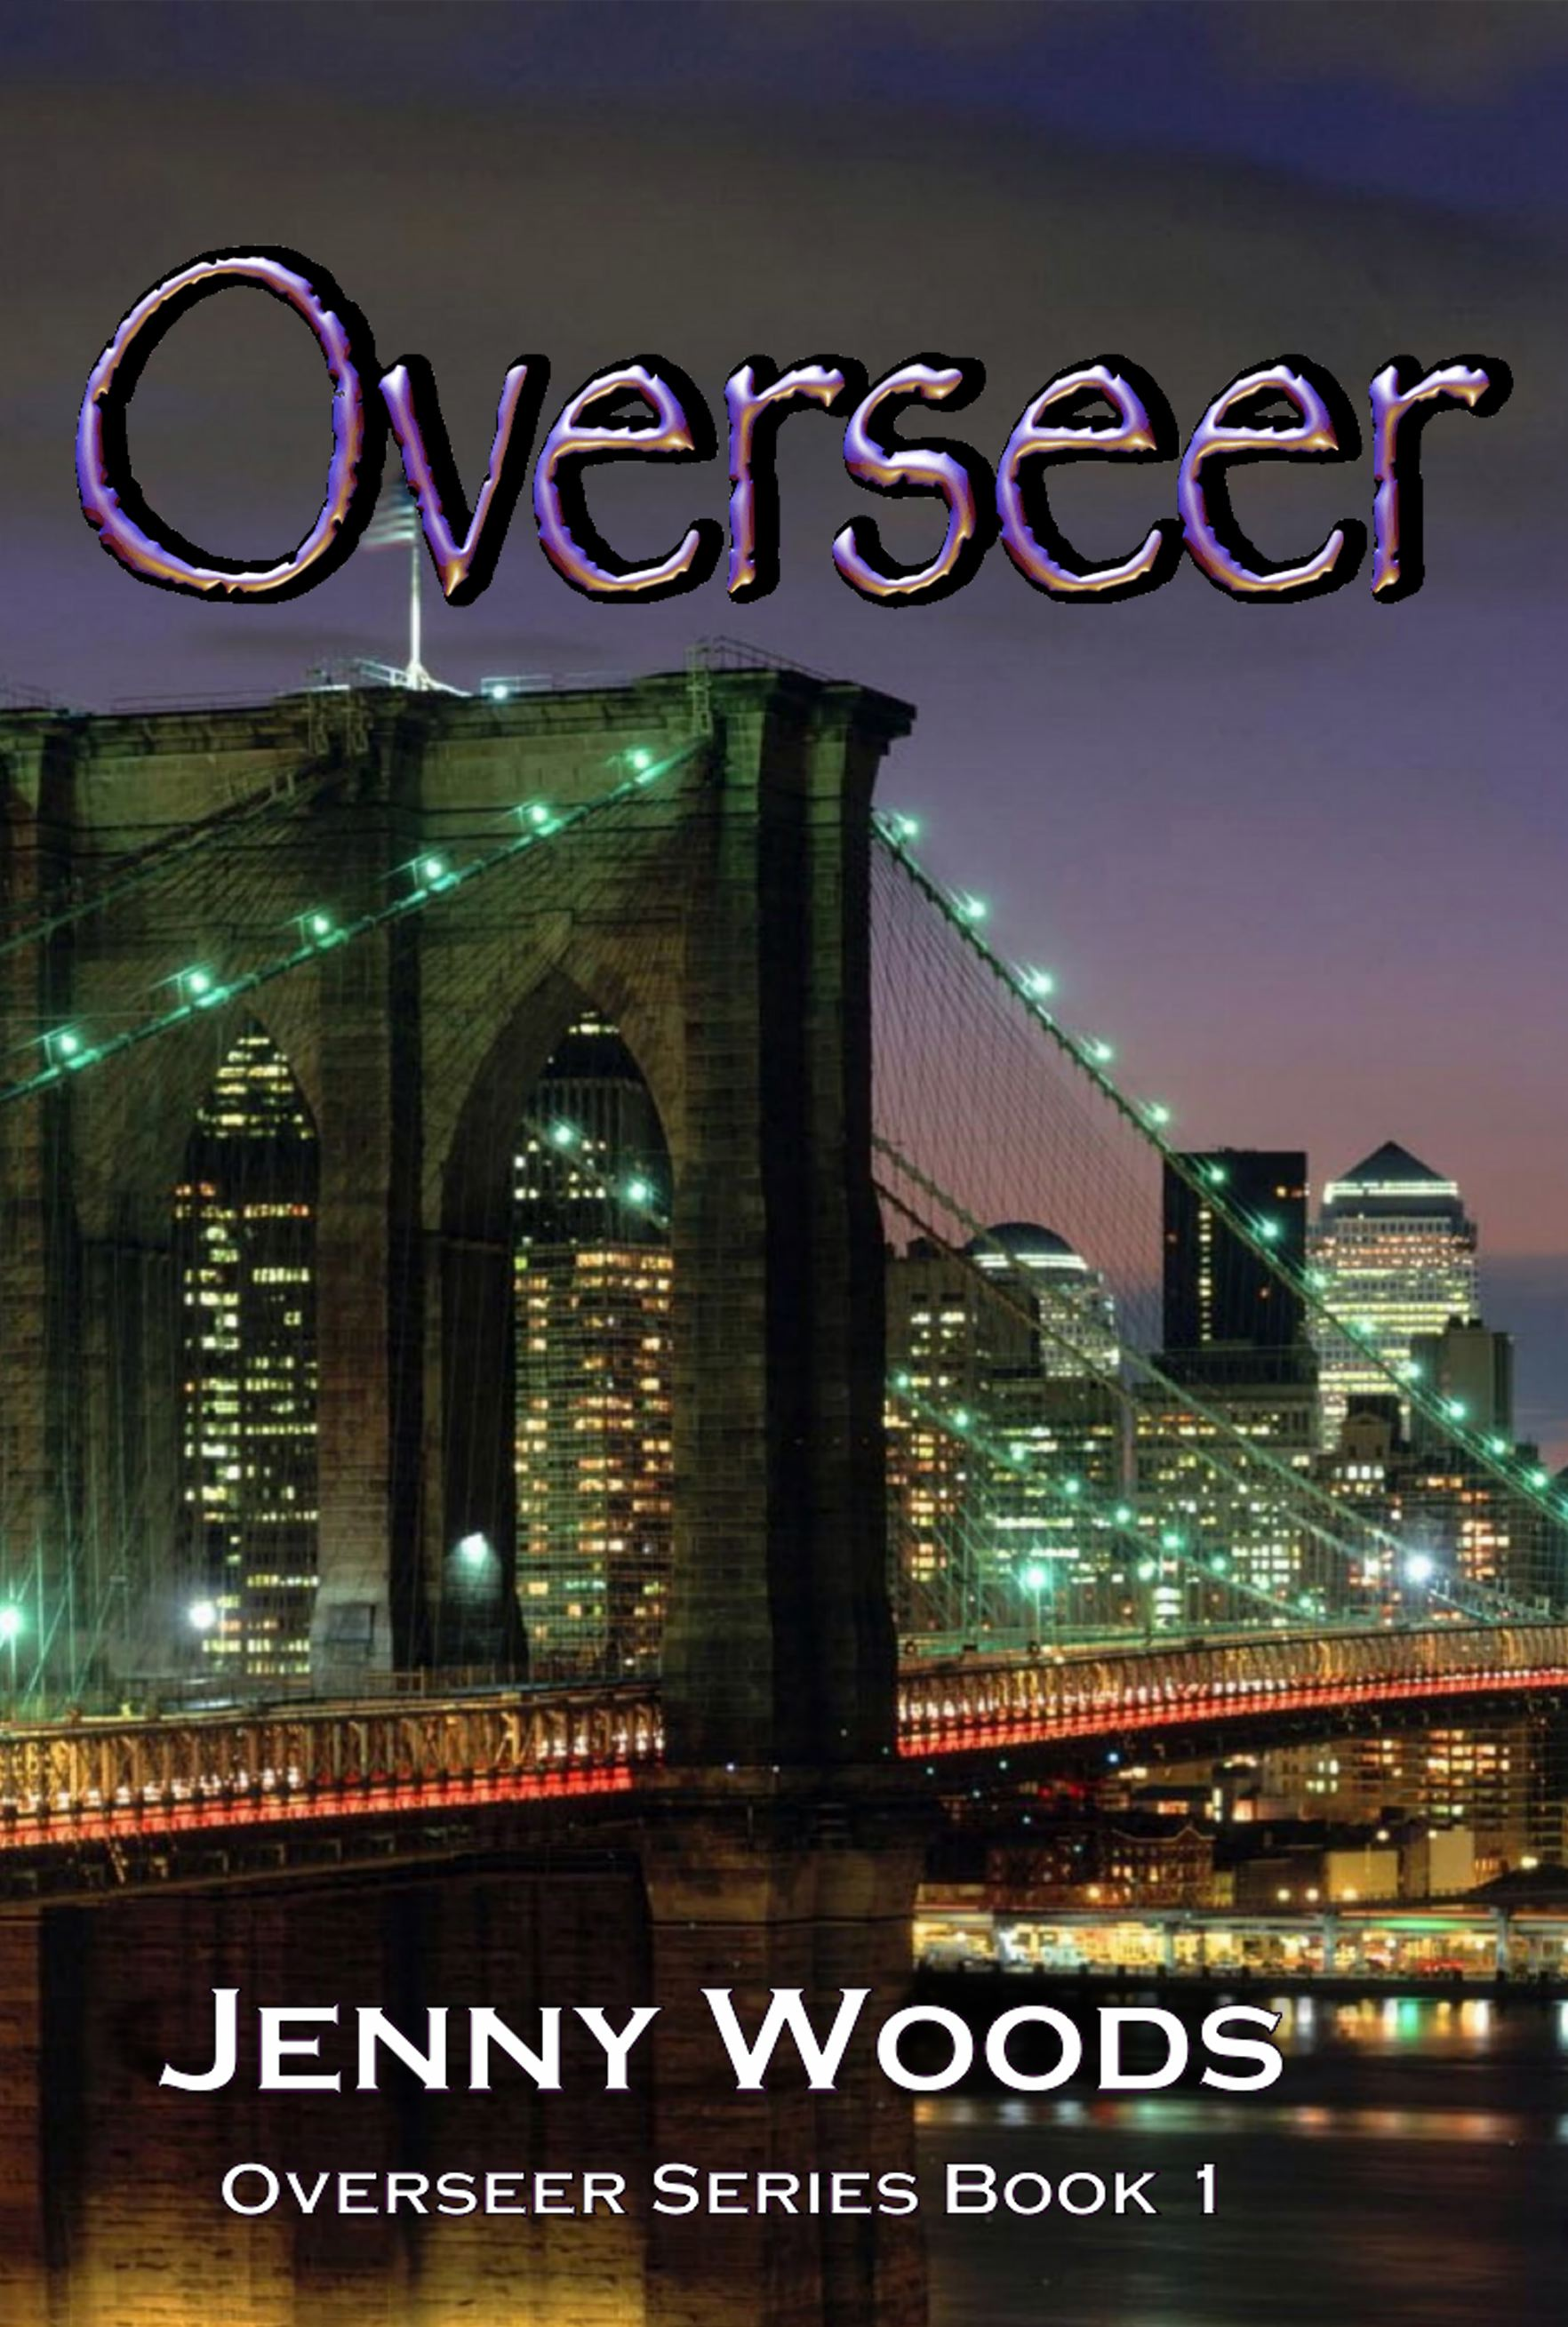 Overseer by Jenny Woods